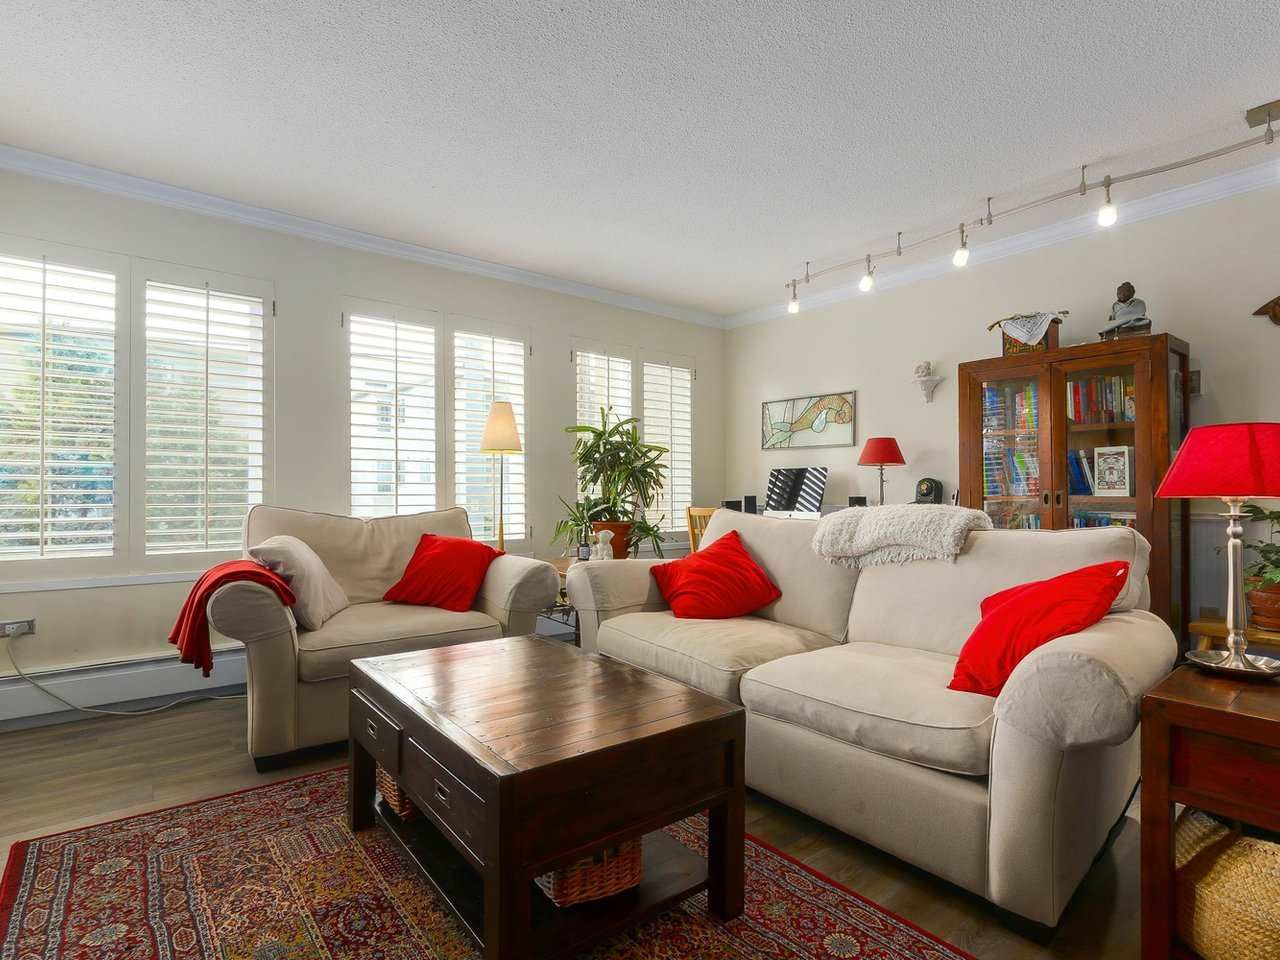 """Main Photo: 103 222 N TEMPLETON Drive in Vancouver: Hastings Condo for sale in """"CAMBRIDGE COURT"""" (Vancouver East)  : MLS®# R2383049"""